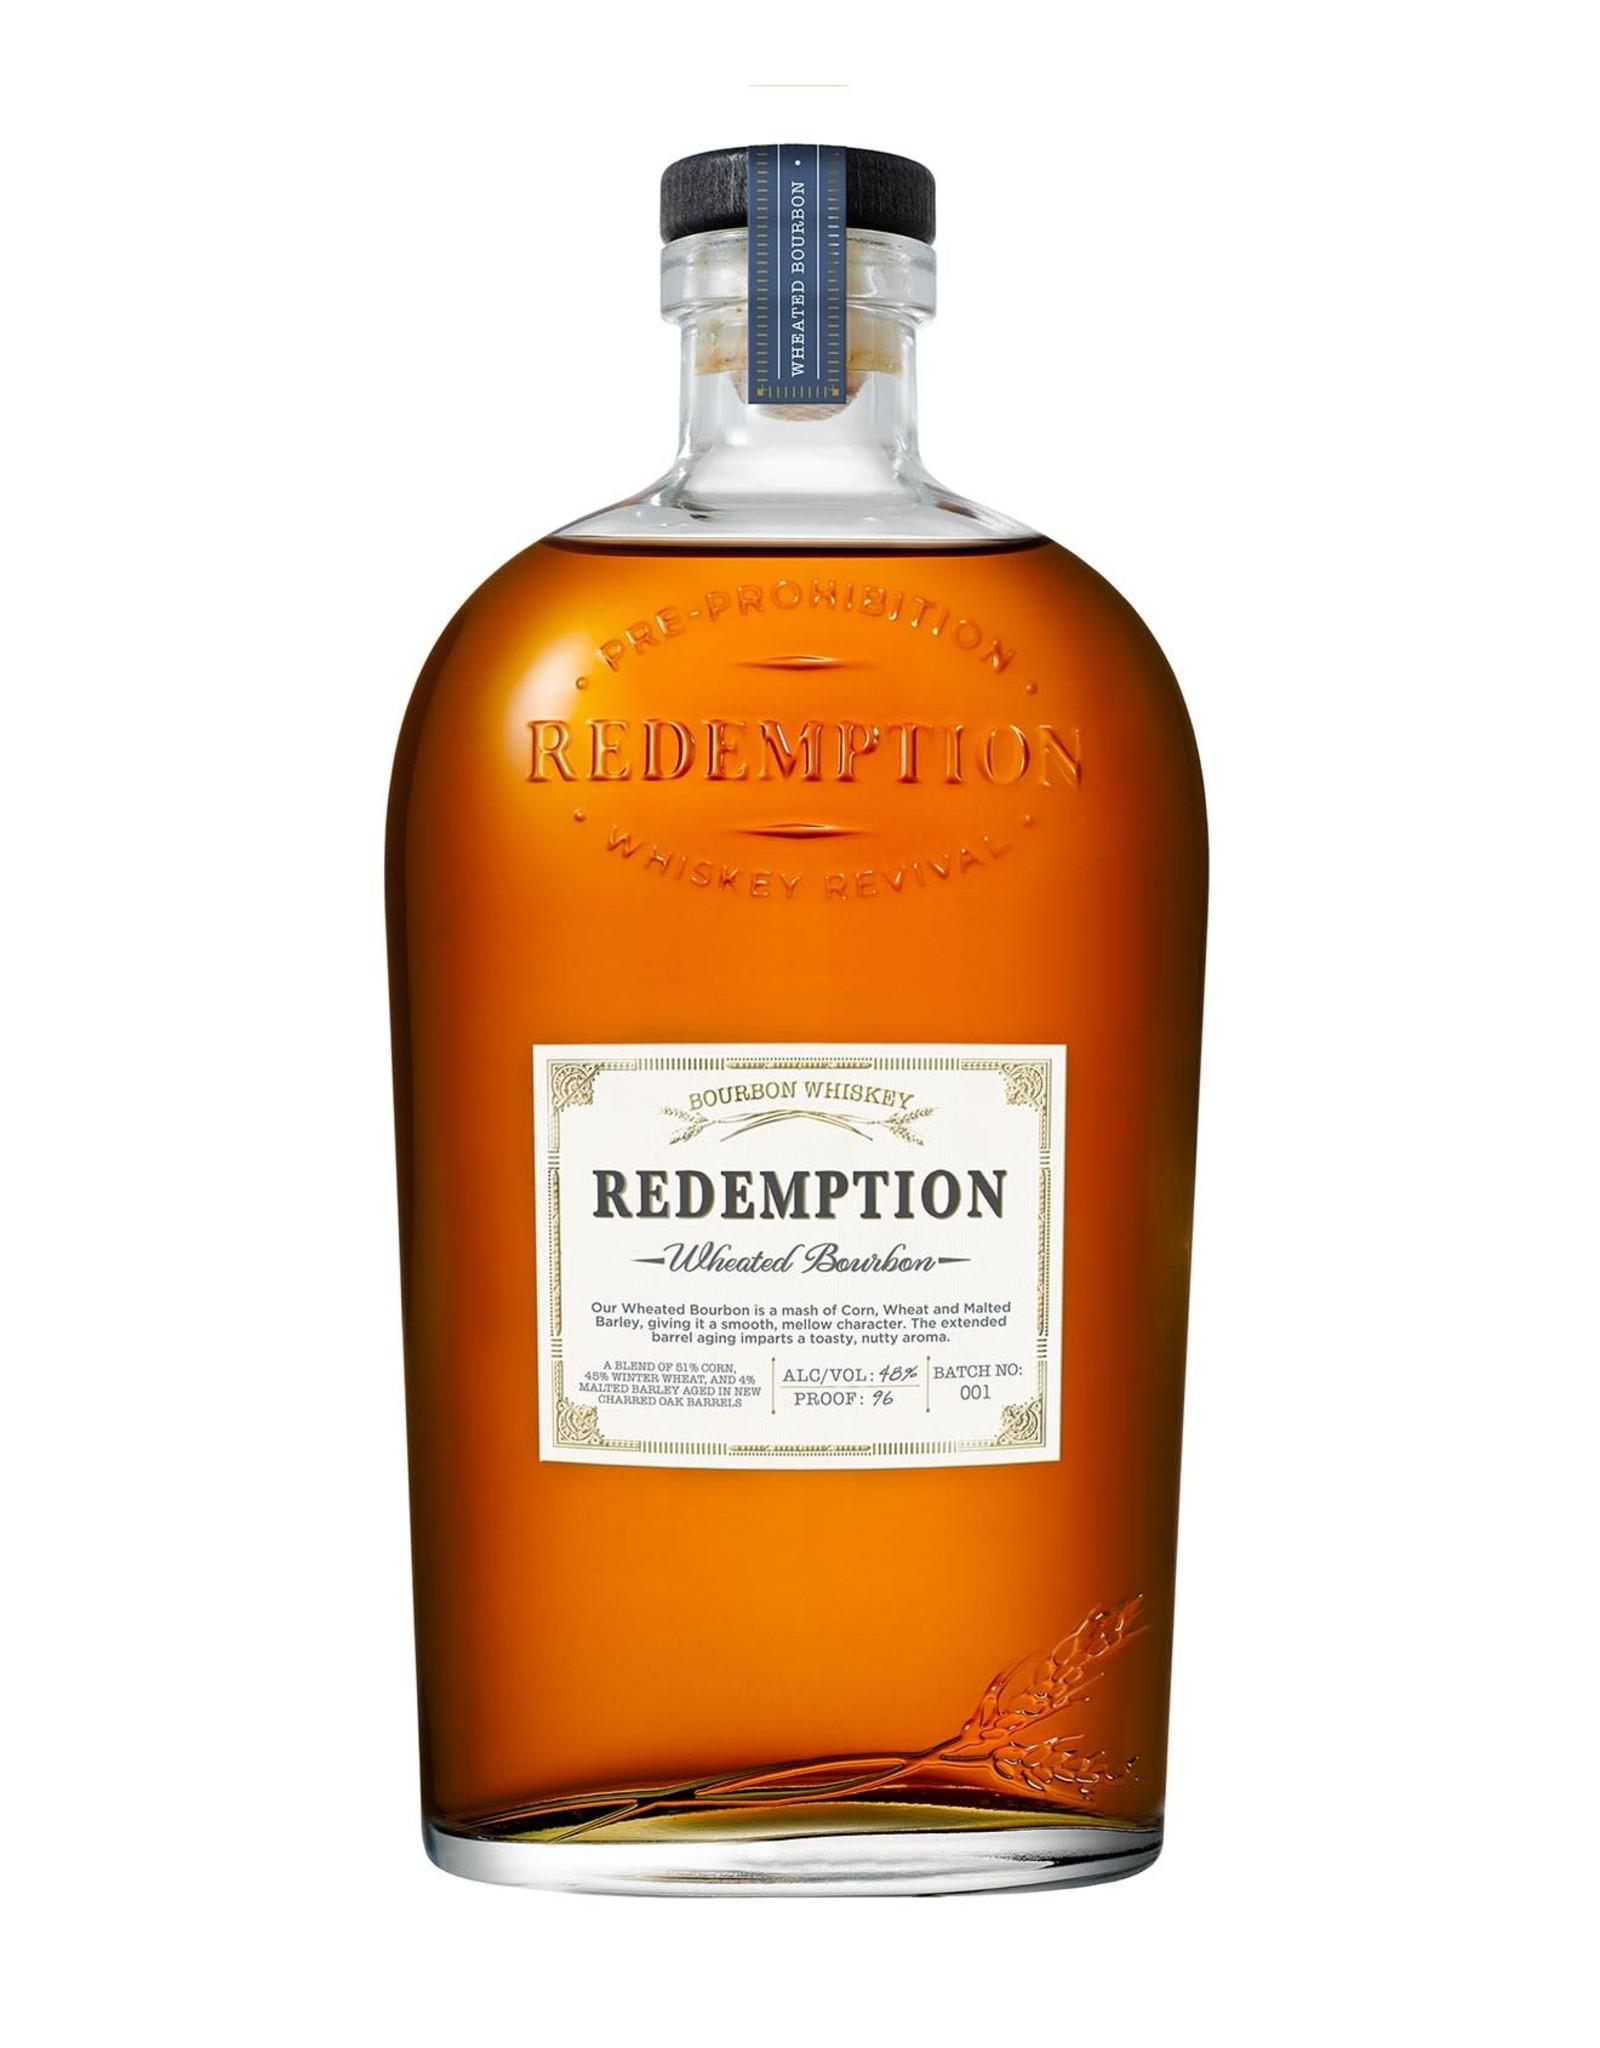 Redemption Bbn Wheated 96